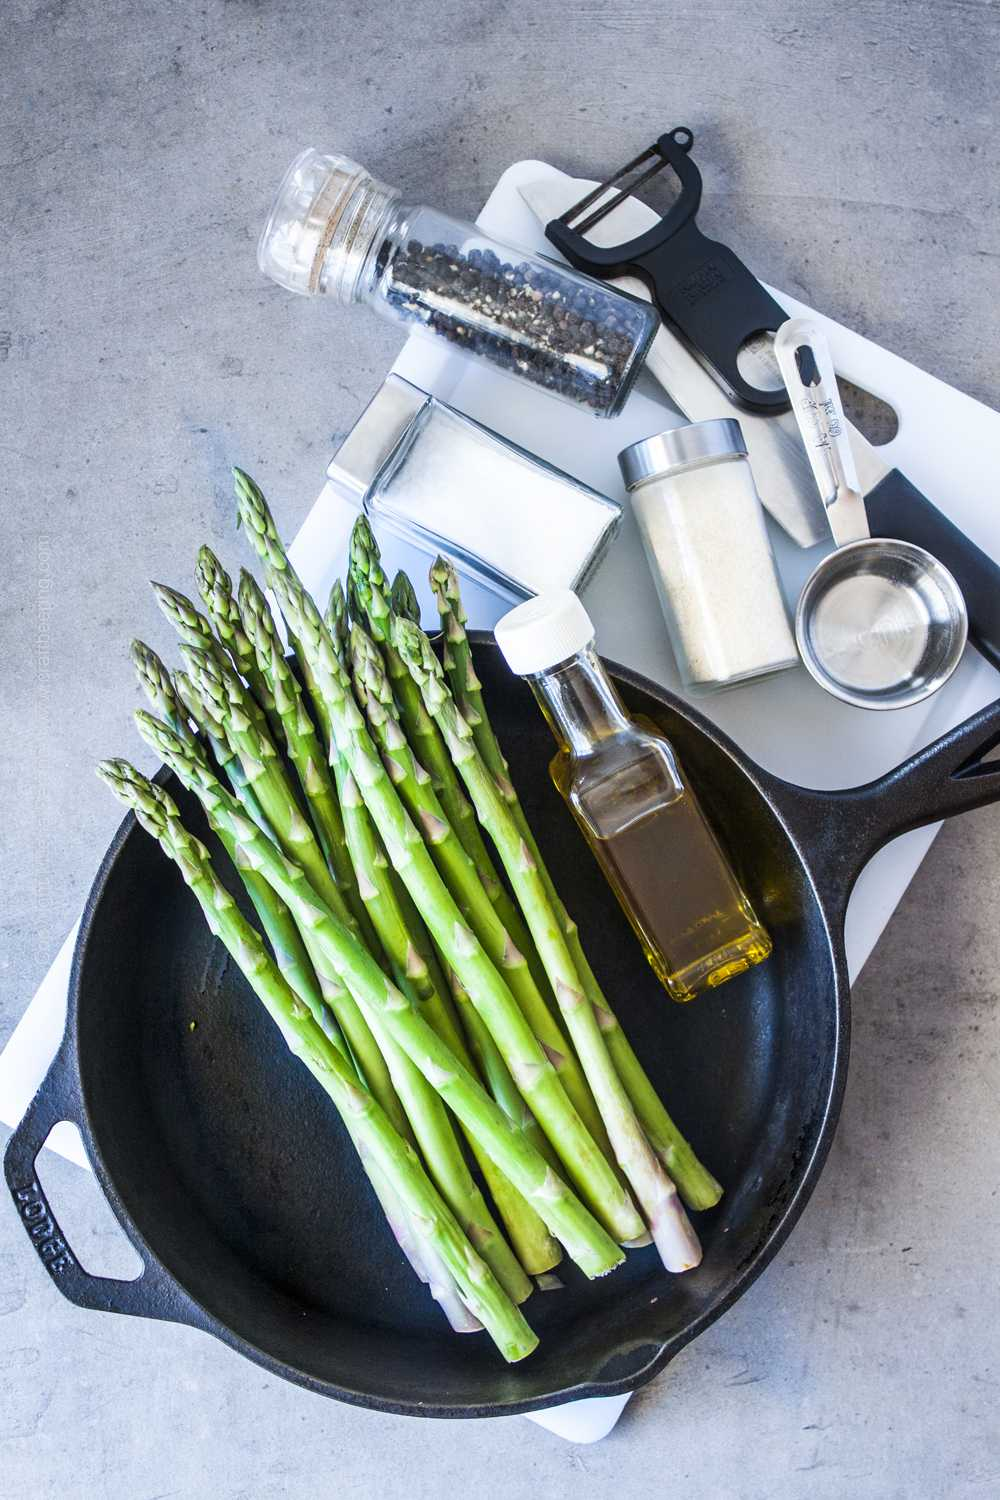 Ingredients for sauteed asparagus (cast iron skillet, asparagus spears, olive oil, water, seasonings.